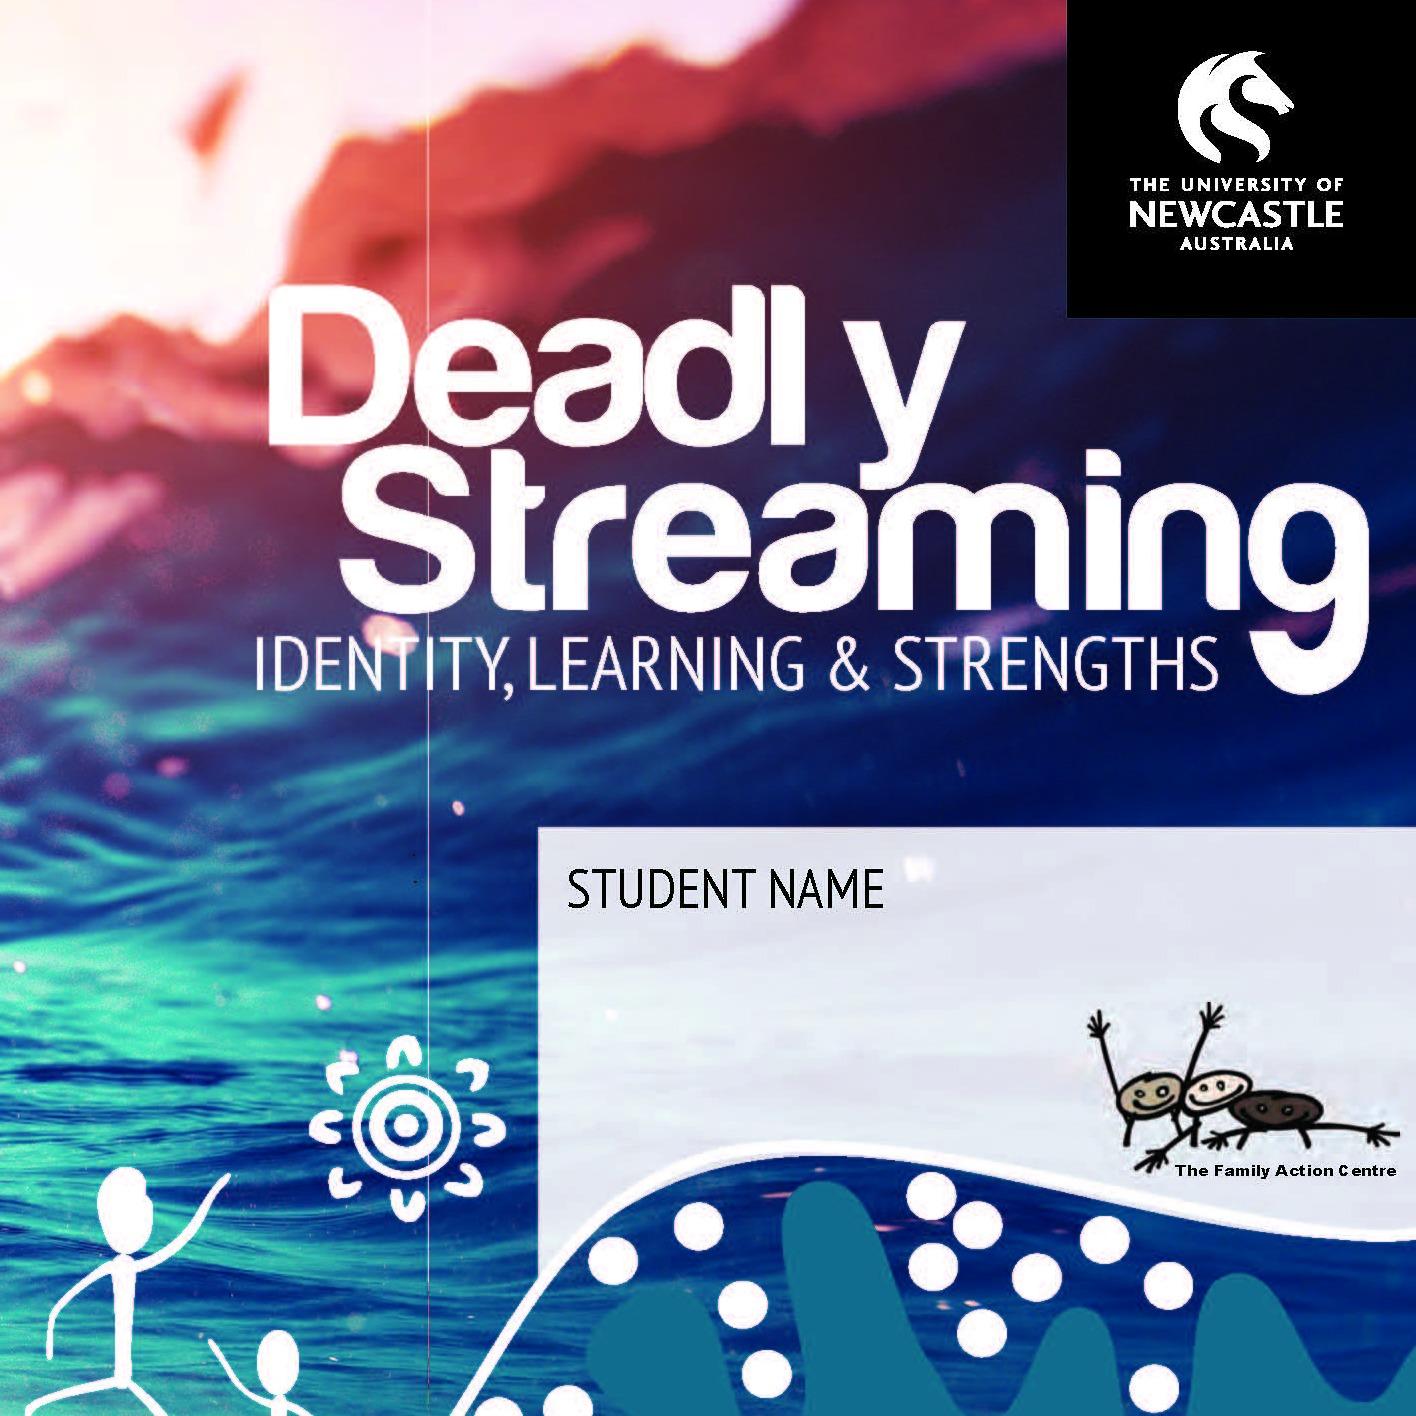 Deadly Streaming: Identity, Learning and Strengths booklet